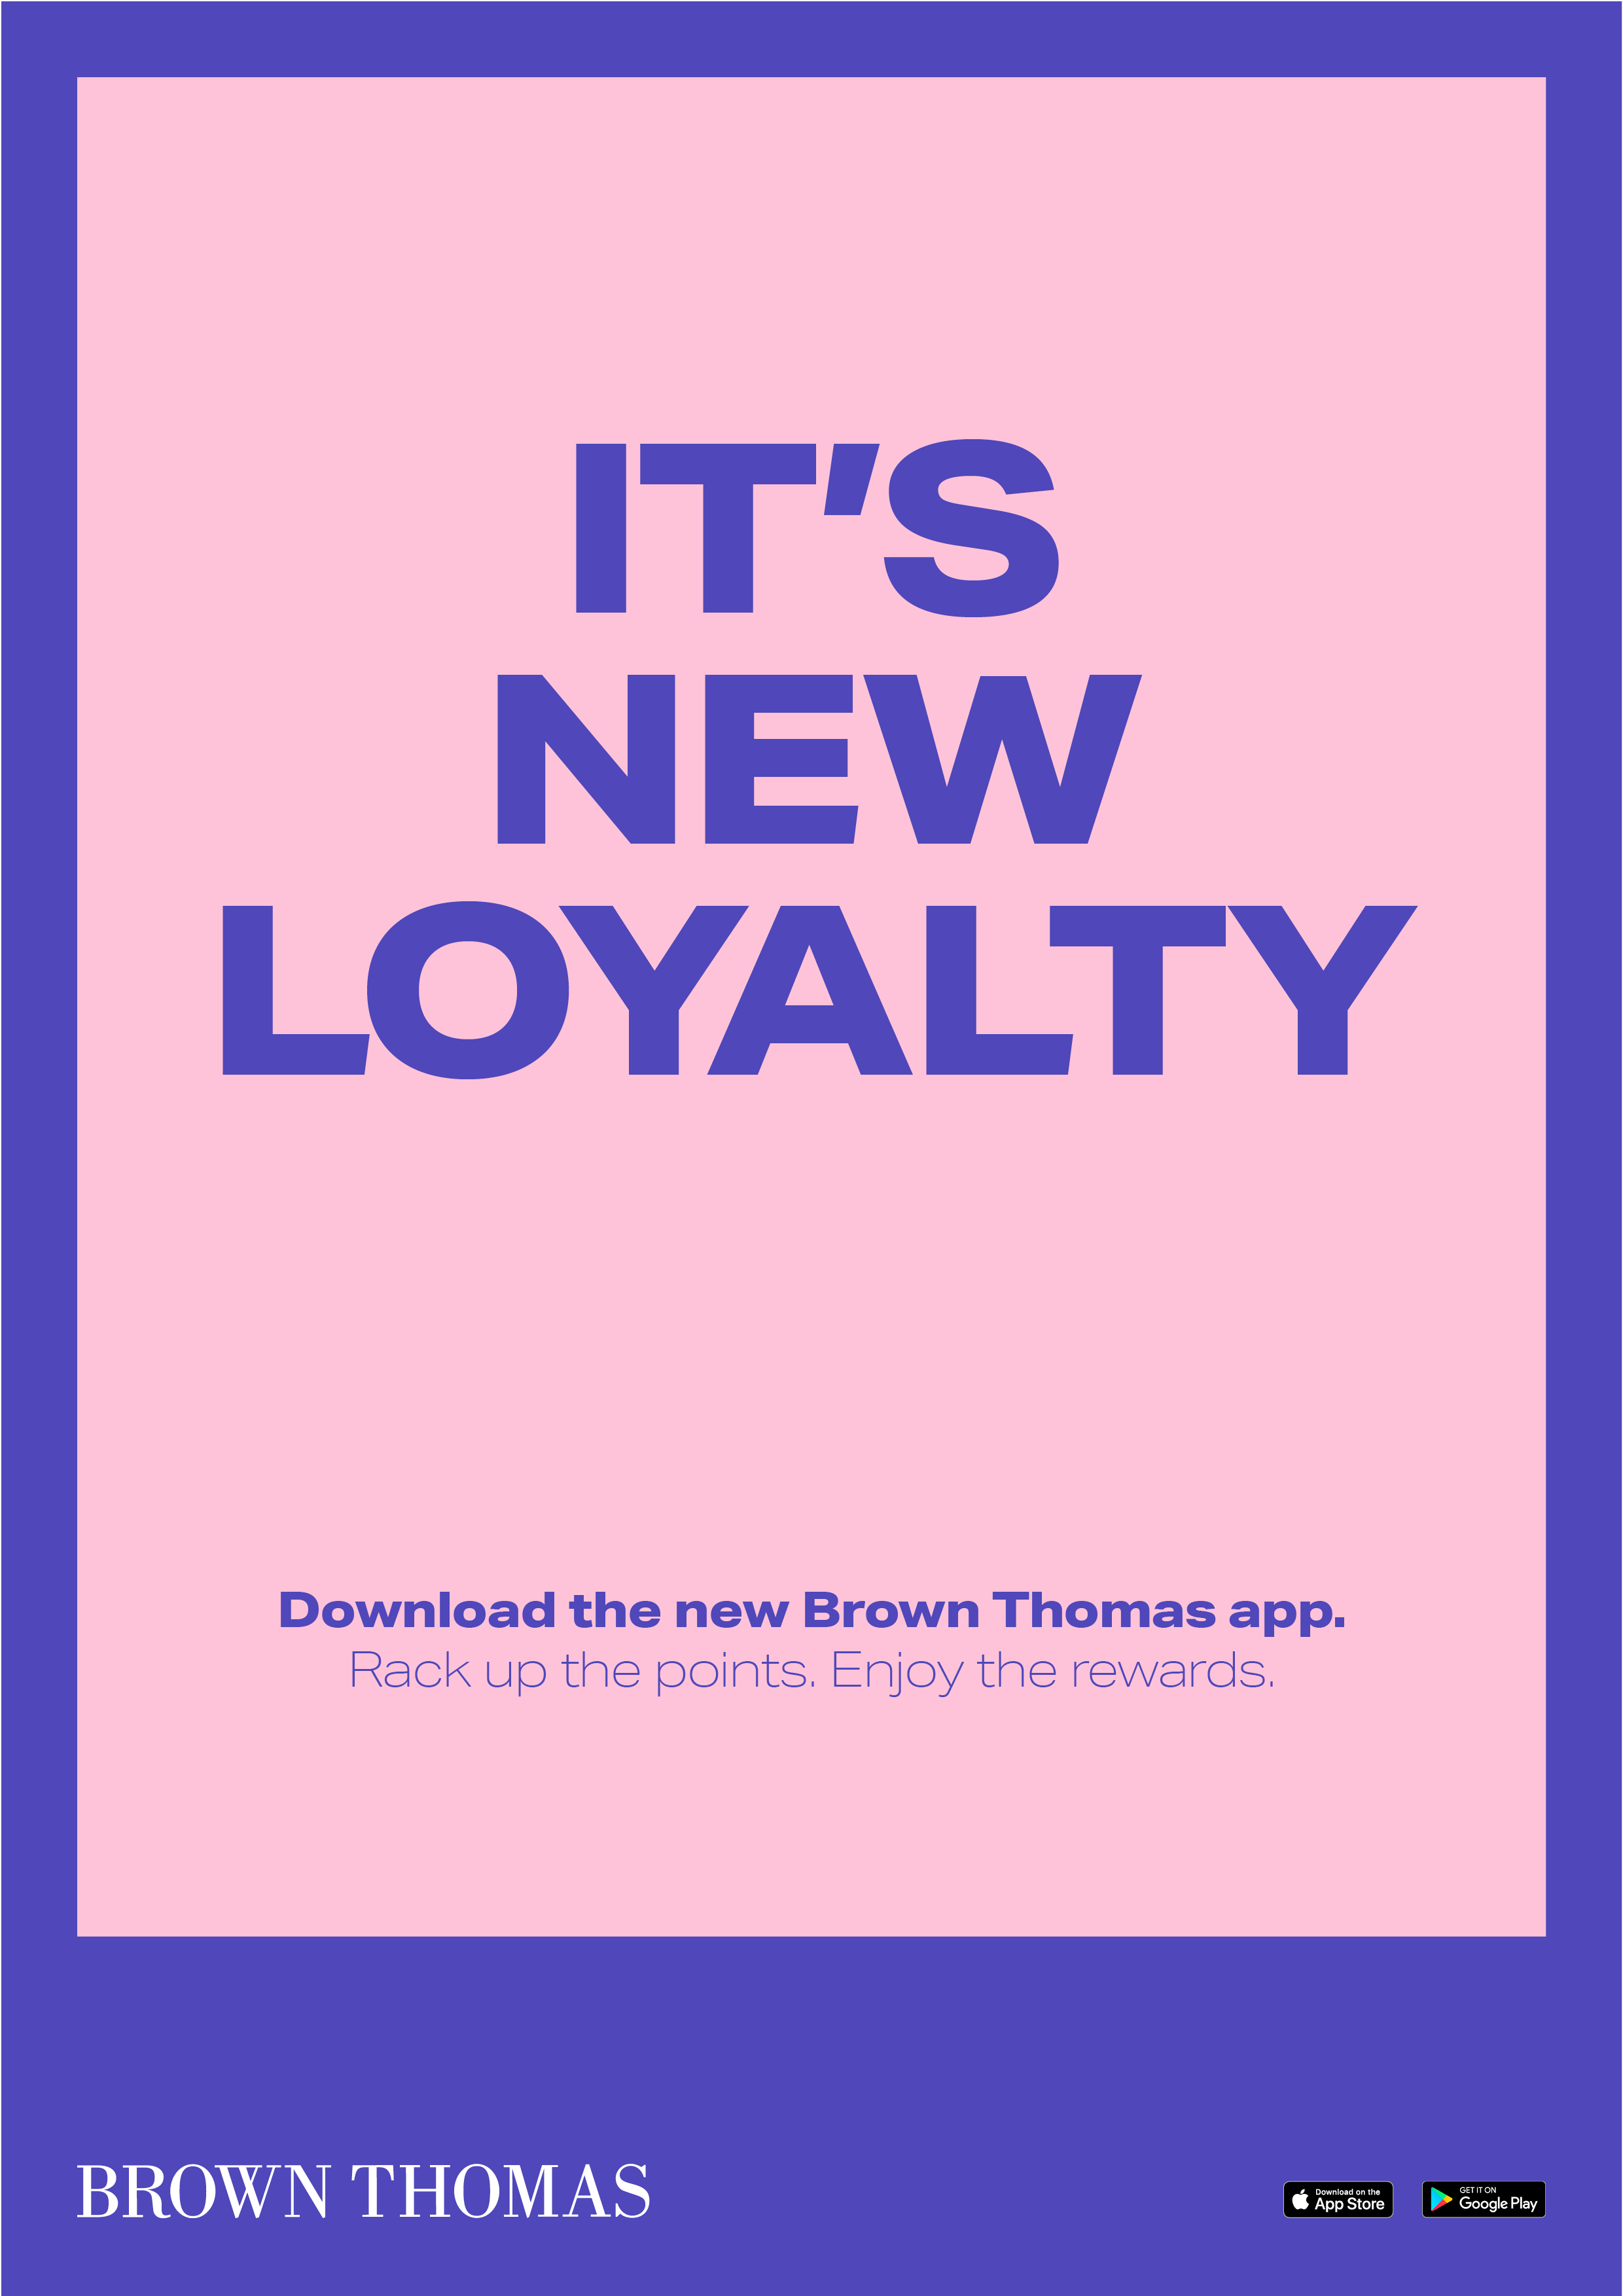 Together We Create_Brown Thomas Loyalty_Ad9.png